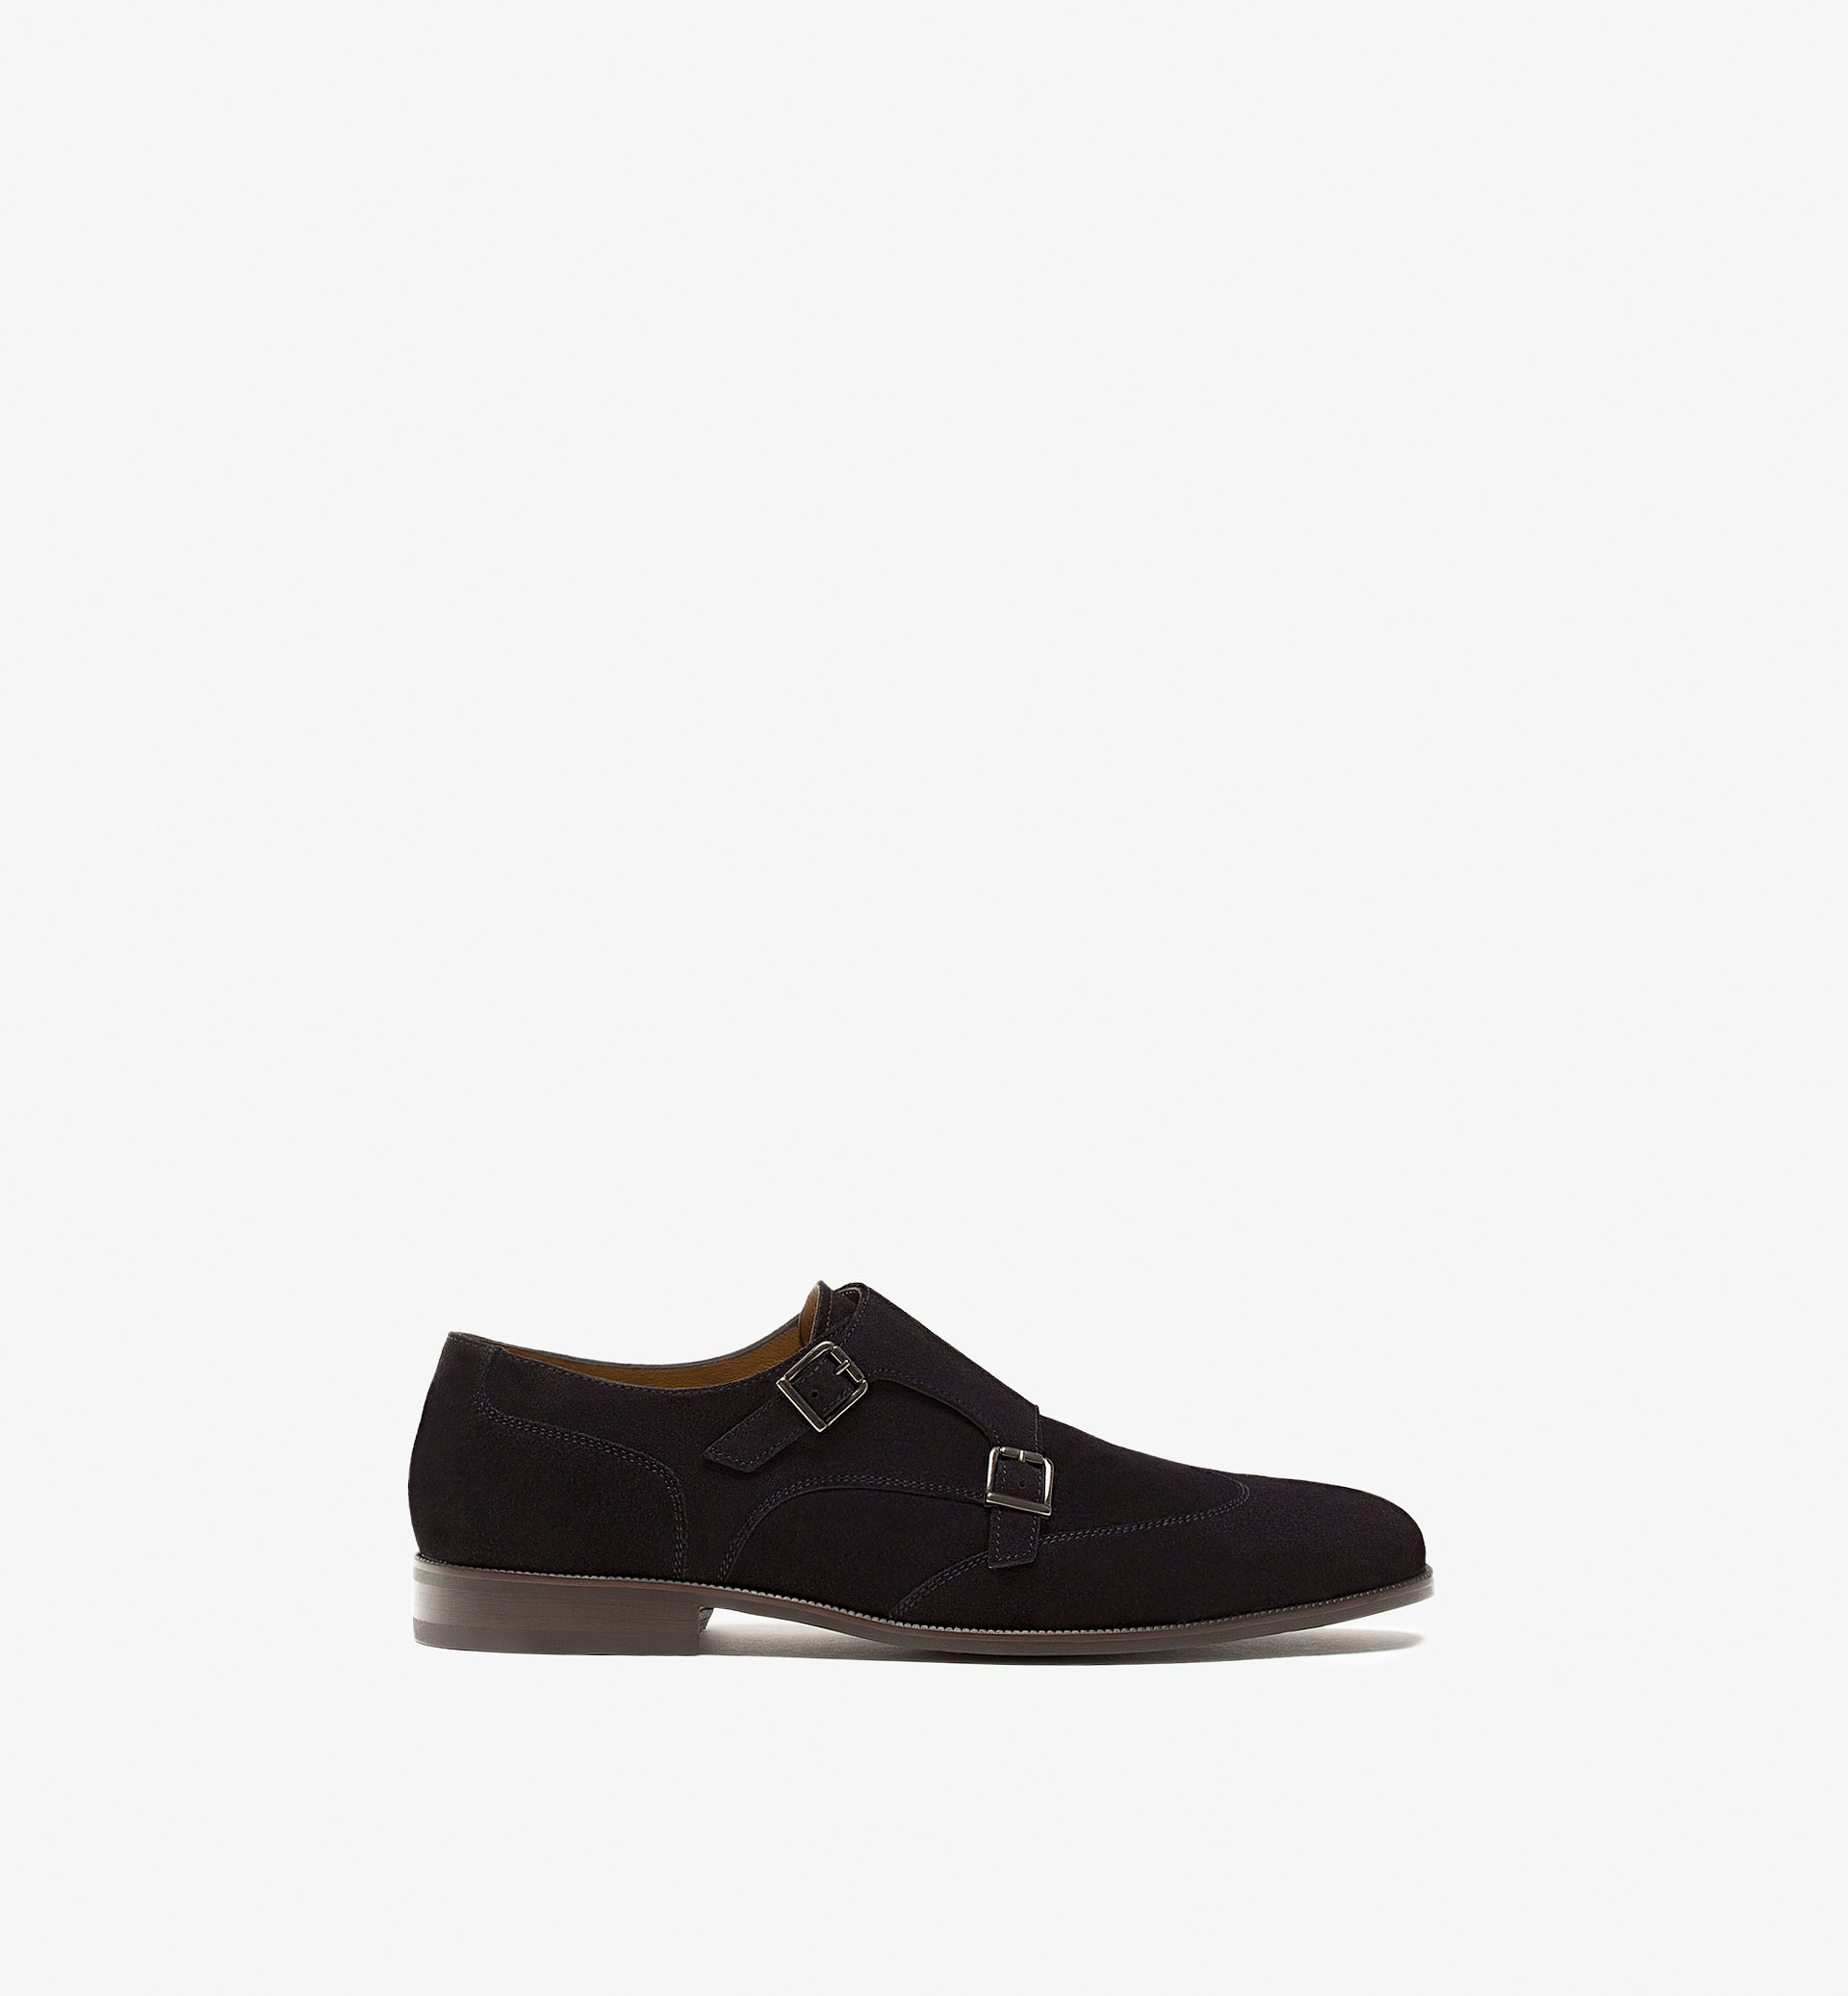 SPLIT SUEDE BUCKLED LEATHER SHOES